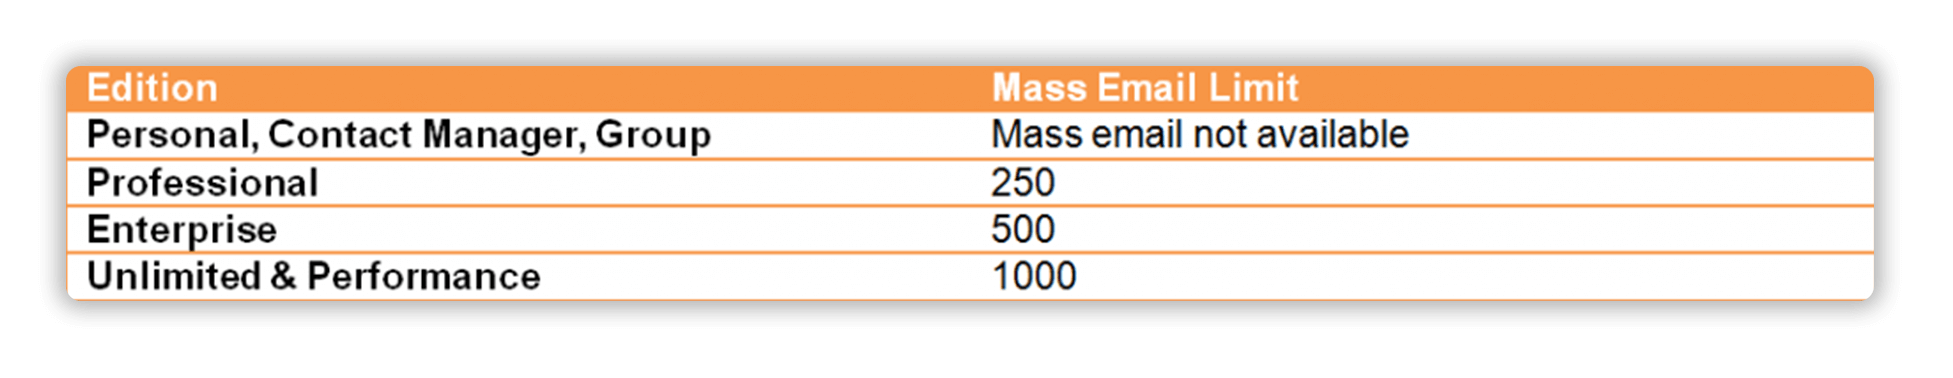 Mass Email Limits in Salesforce Editions